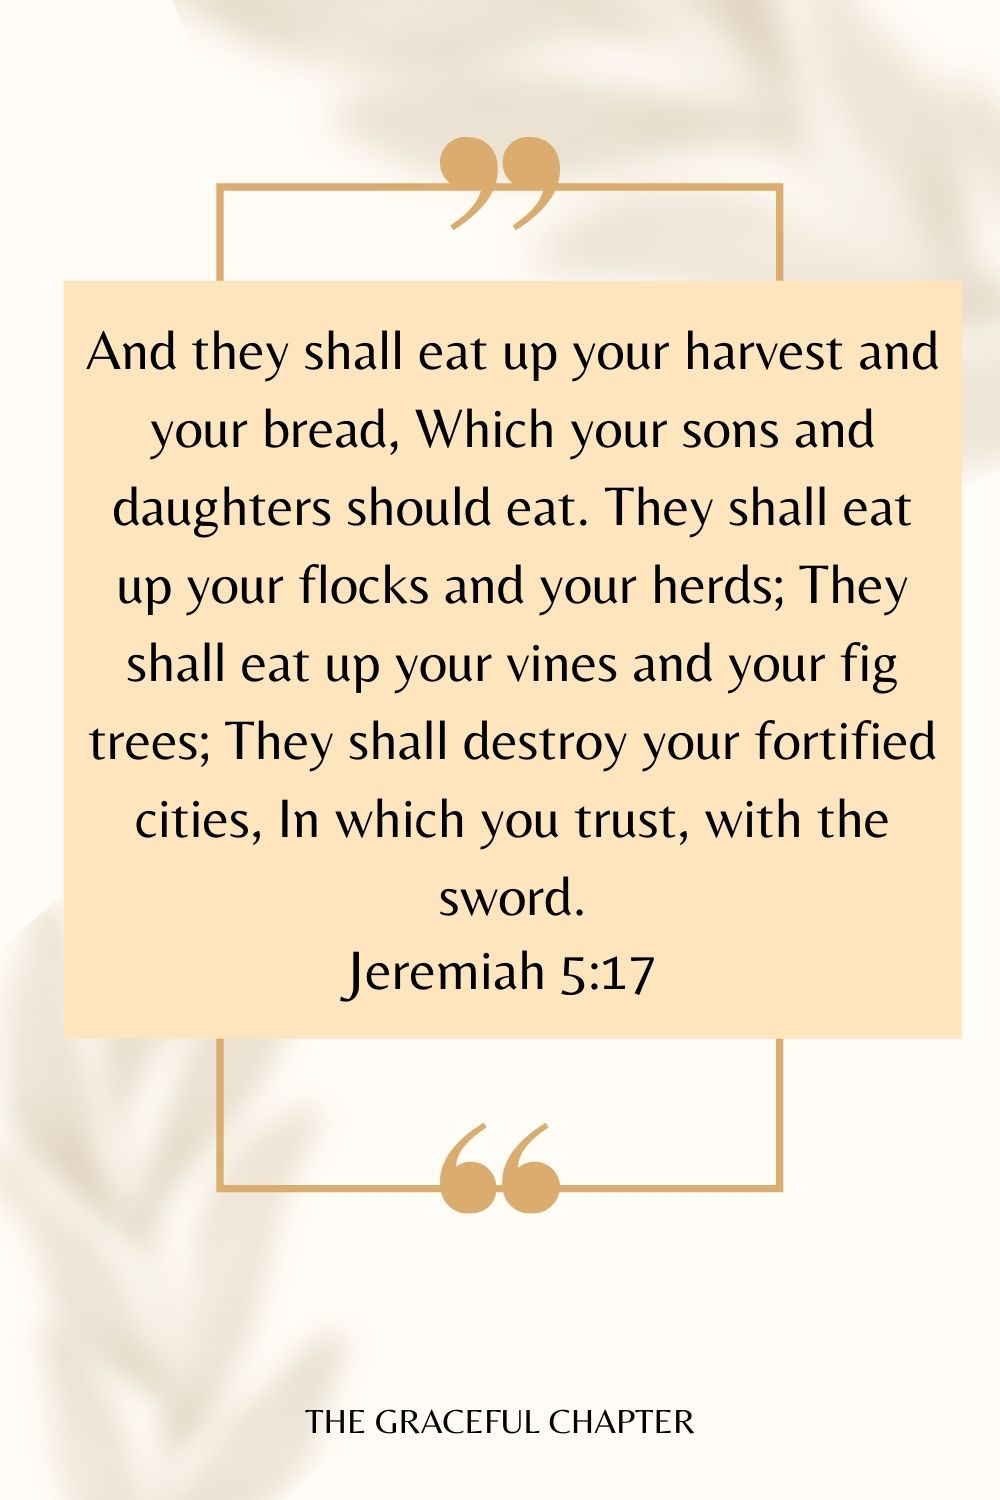 And they shall eat up your harvest and your bread, Which your sons and daughters should eat. They shall eat up your flocks and your herds; They shall eat up your vines and your fig trees; They shall destroy your fortified cities, In which you trust, with the sword. Jeremiah 5:17